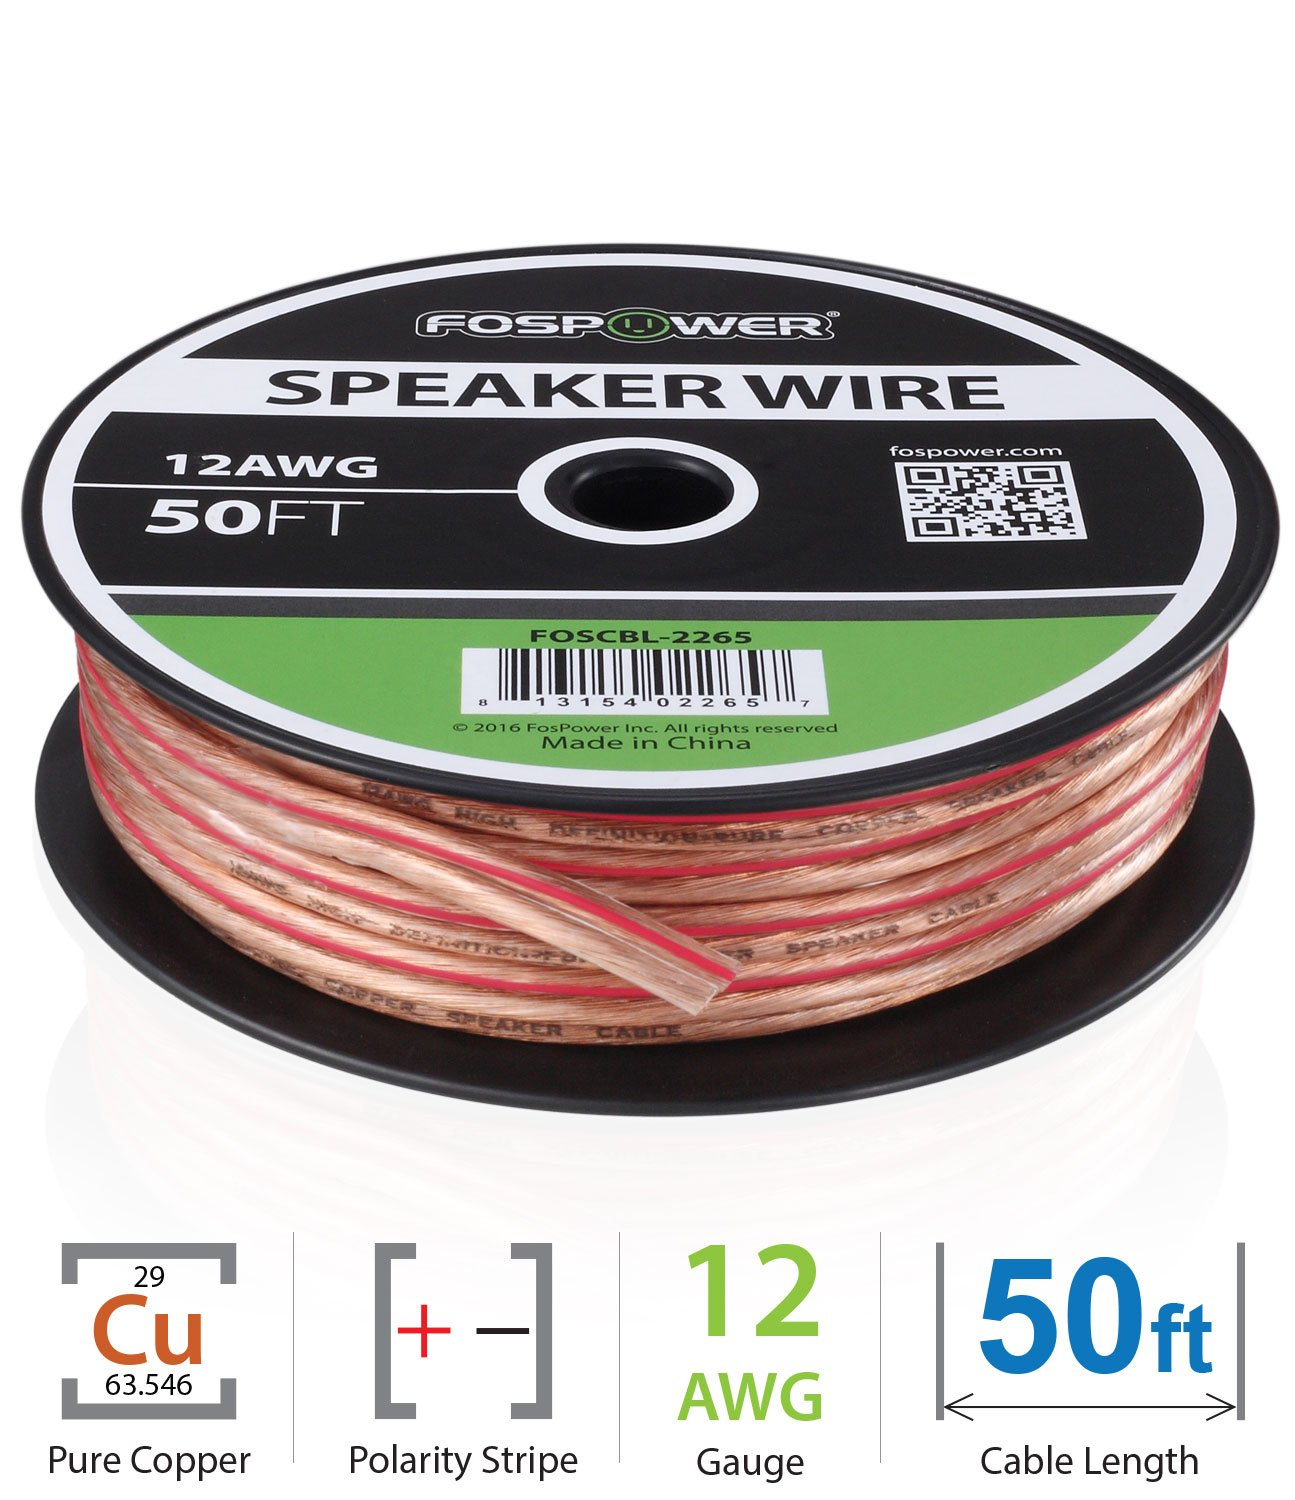 FosPower 12AWG Speaker Wire [12 Gauge | 50 FT] Premium Spooled Oxygen-Free Copper OFC Speaker Wire with Clear PVC Jacket & Polarity Stripe